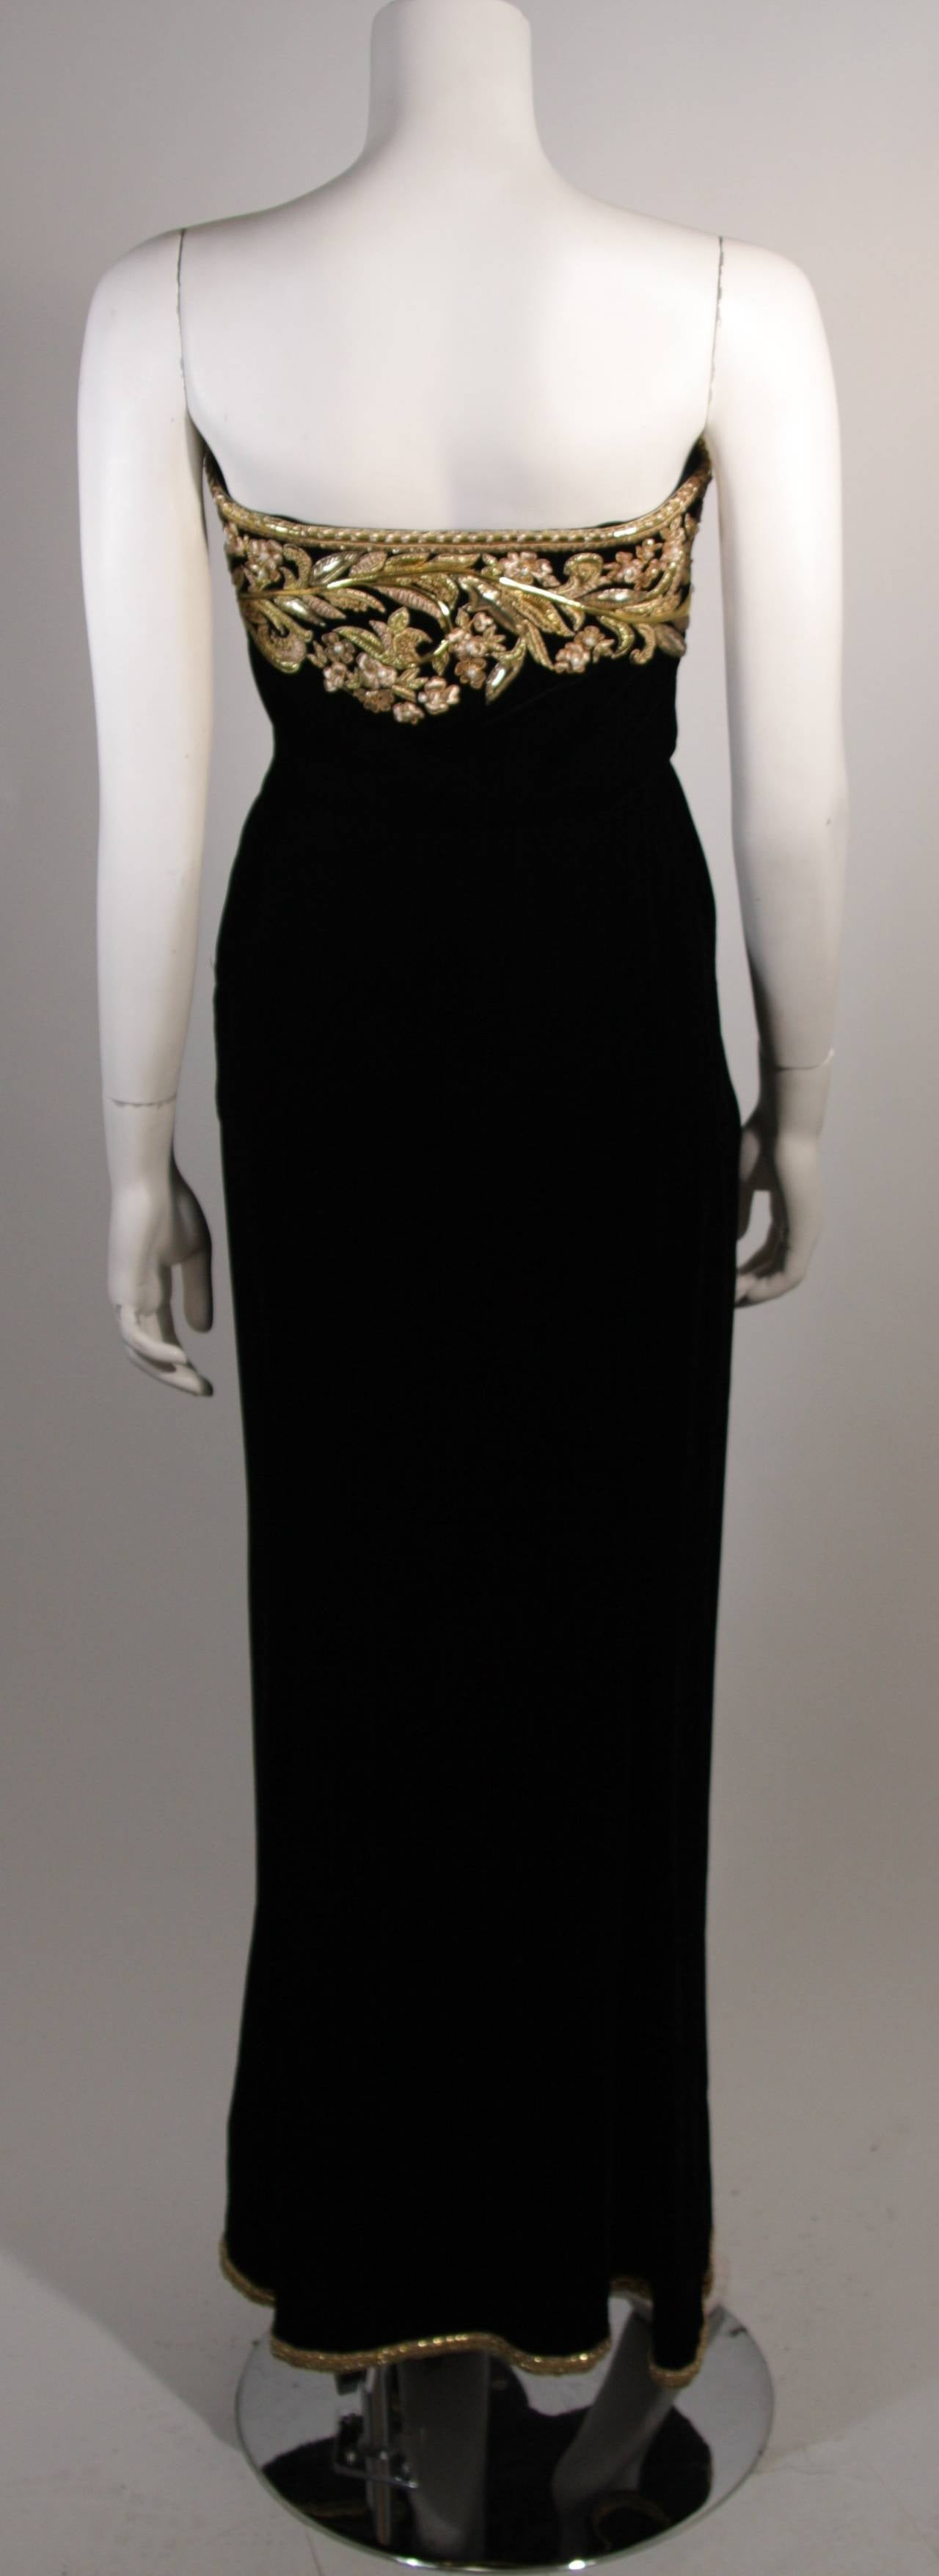 Oscar De La Renta Black Velvet Gown with Metallic Embellishments 9